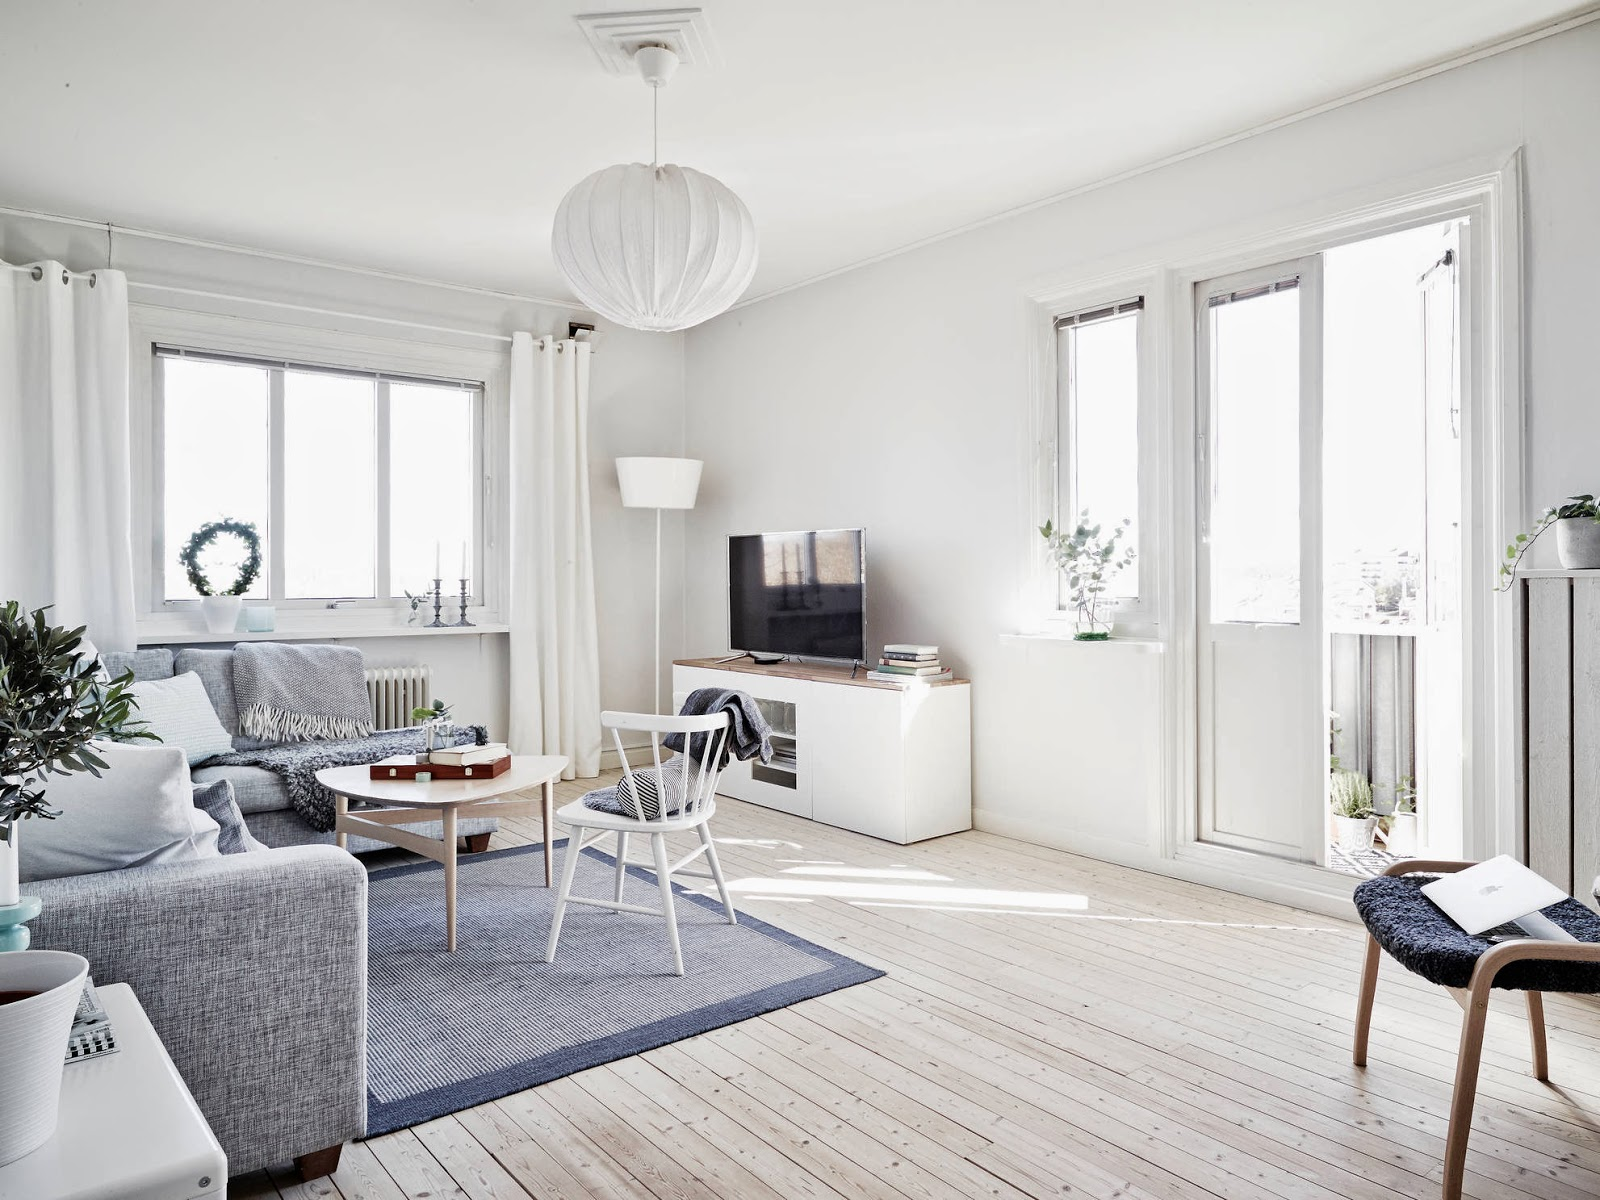 Swedish Living Room My Scandinavian Home A Light And Airy White And Grey Swedish